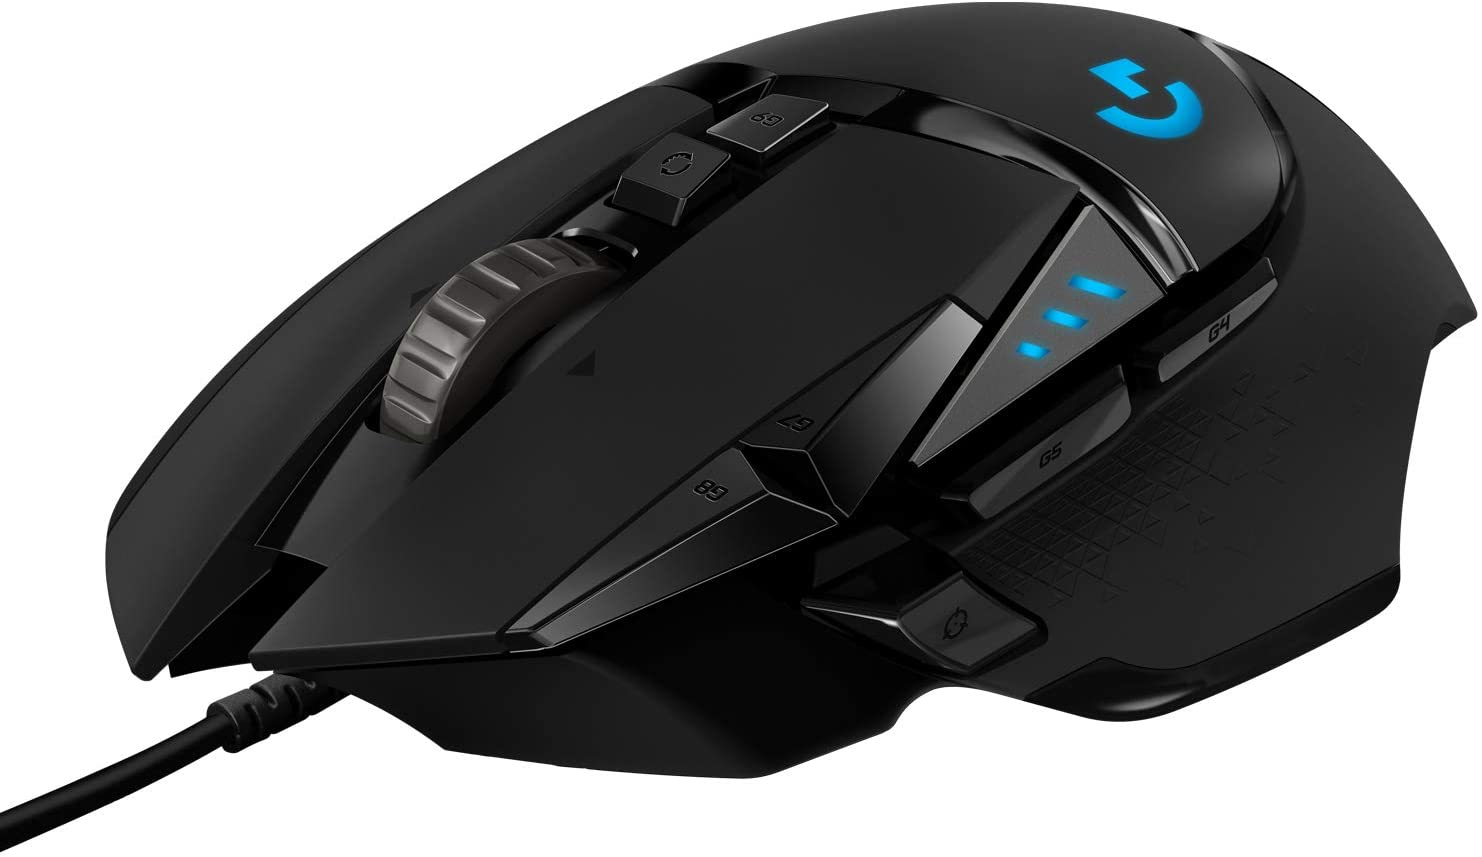 12 Best FPS Mouse For First Person Shooter Gaming - 2021 1